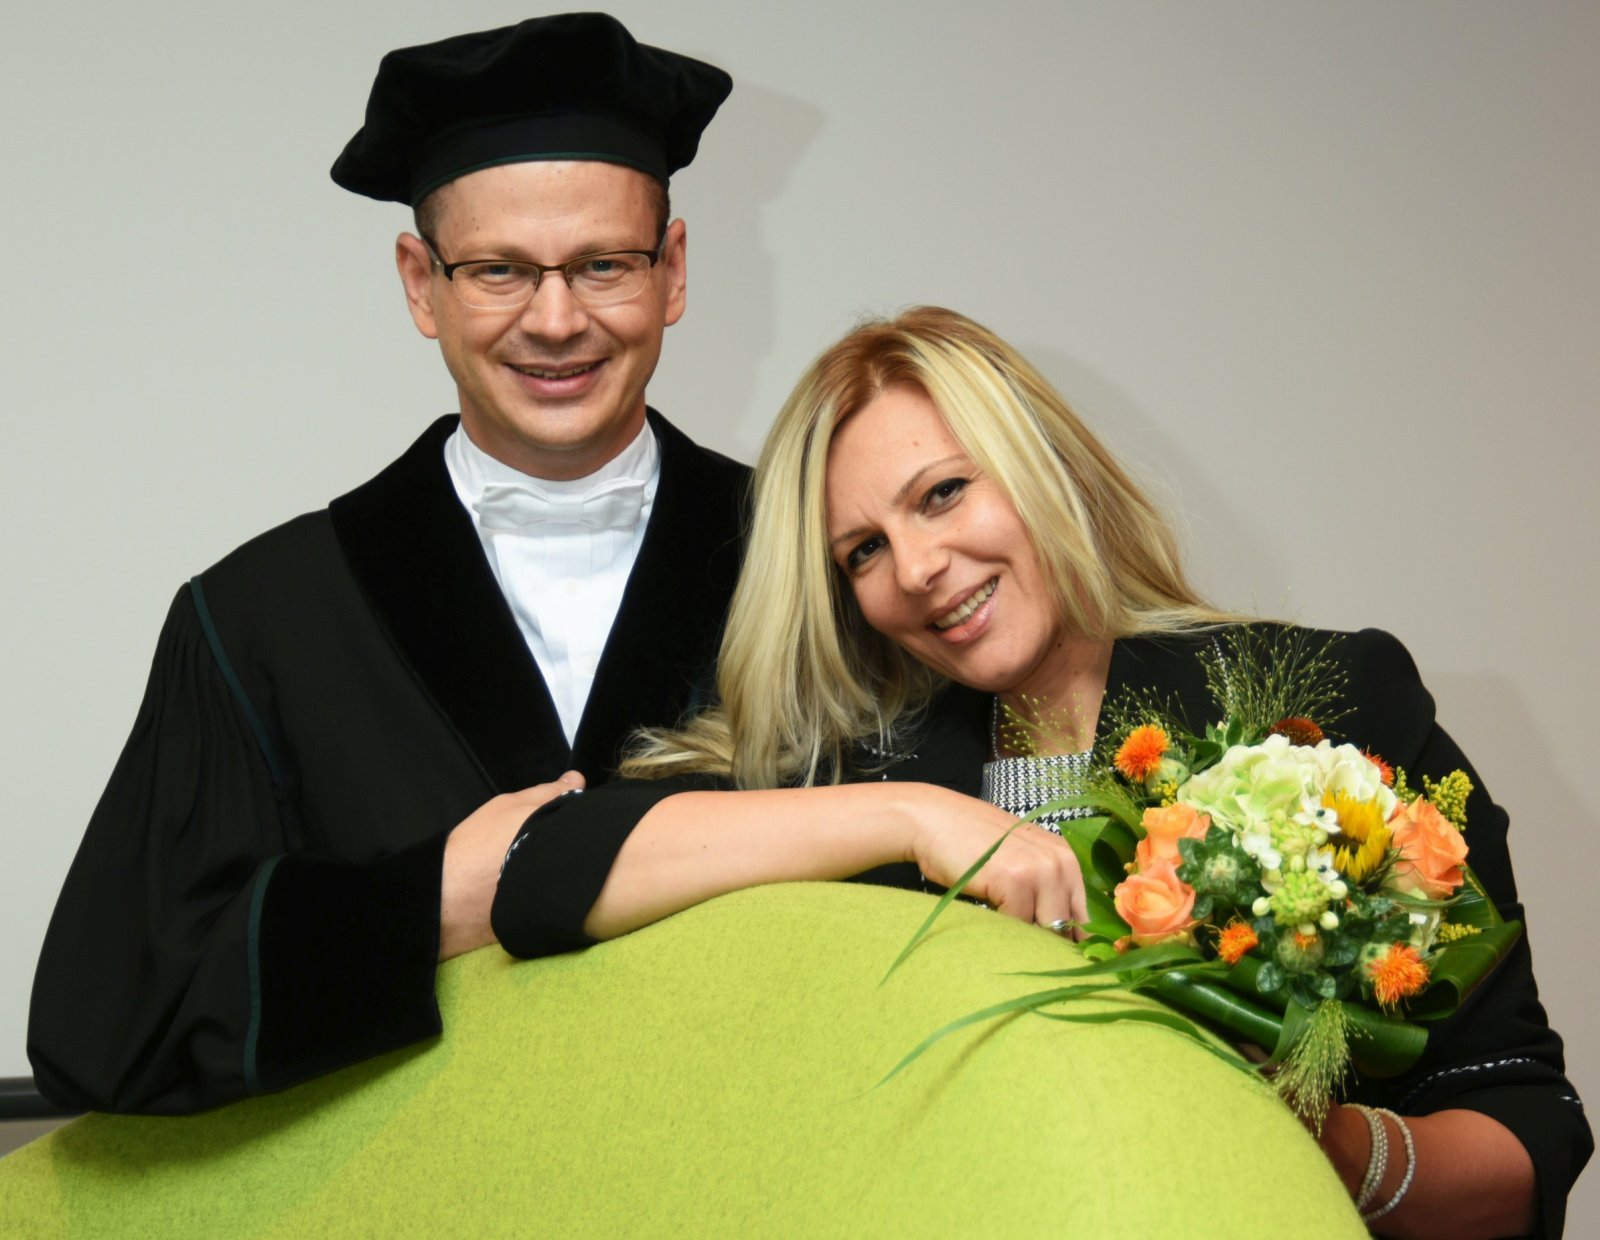 Photo X - At the inaugural lecture as (industrial) full professor at Unversity of Twente (NL)